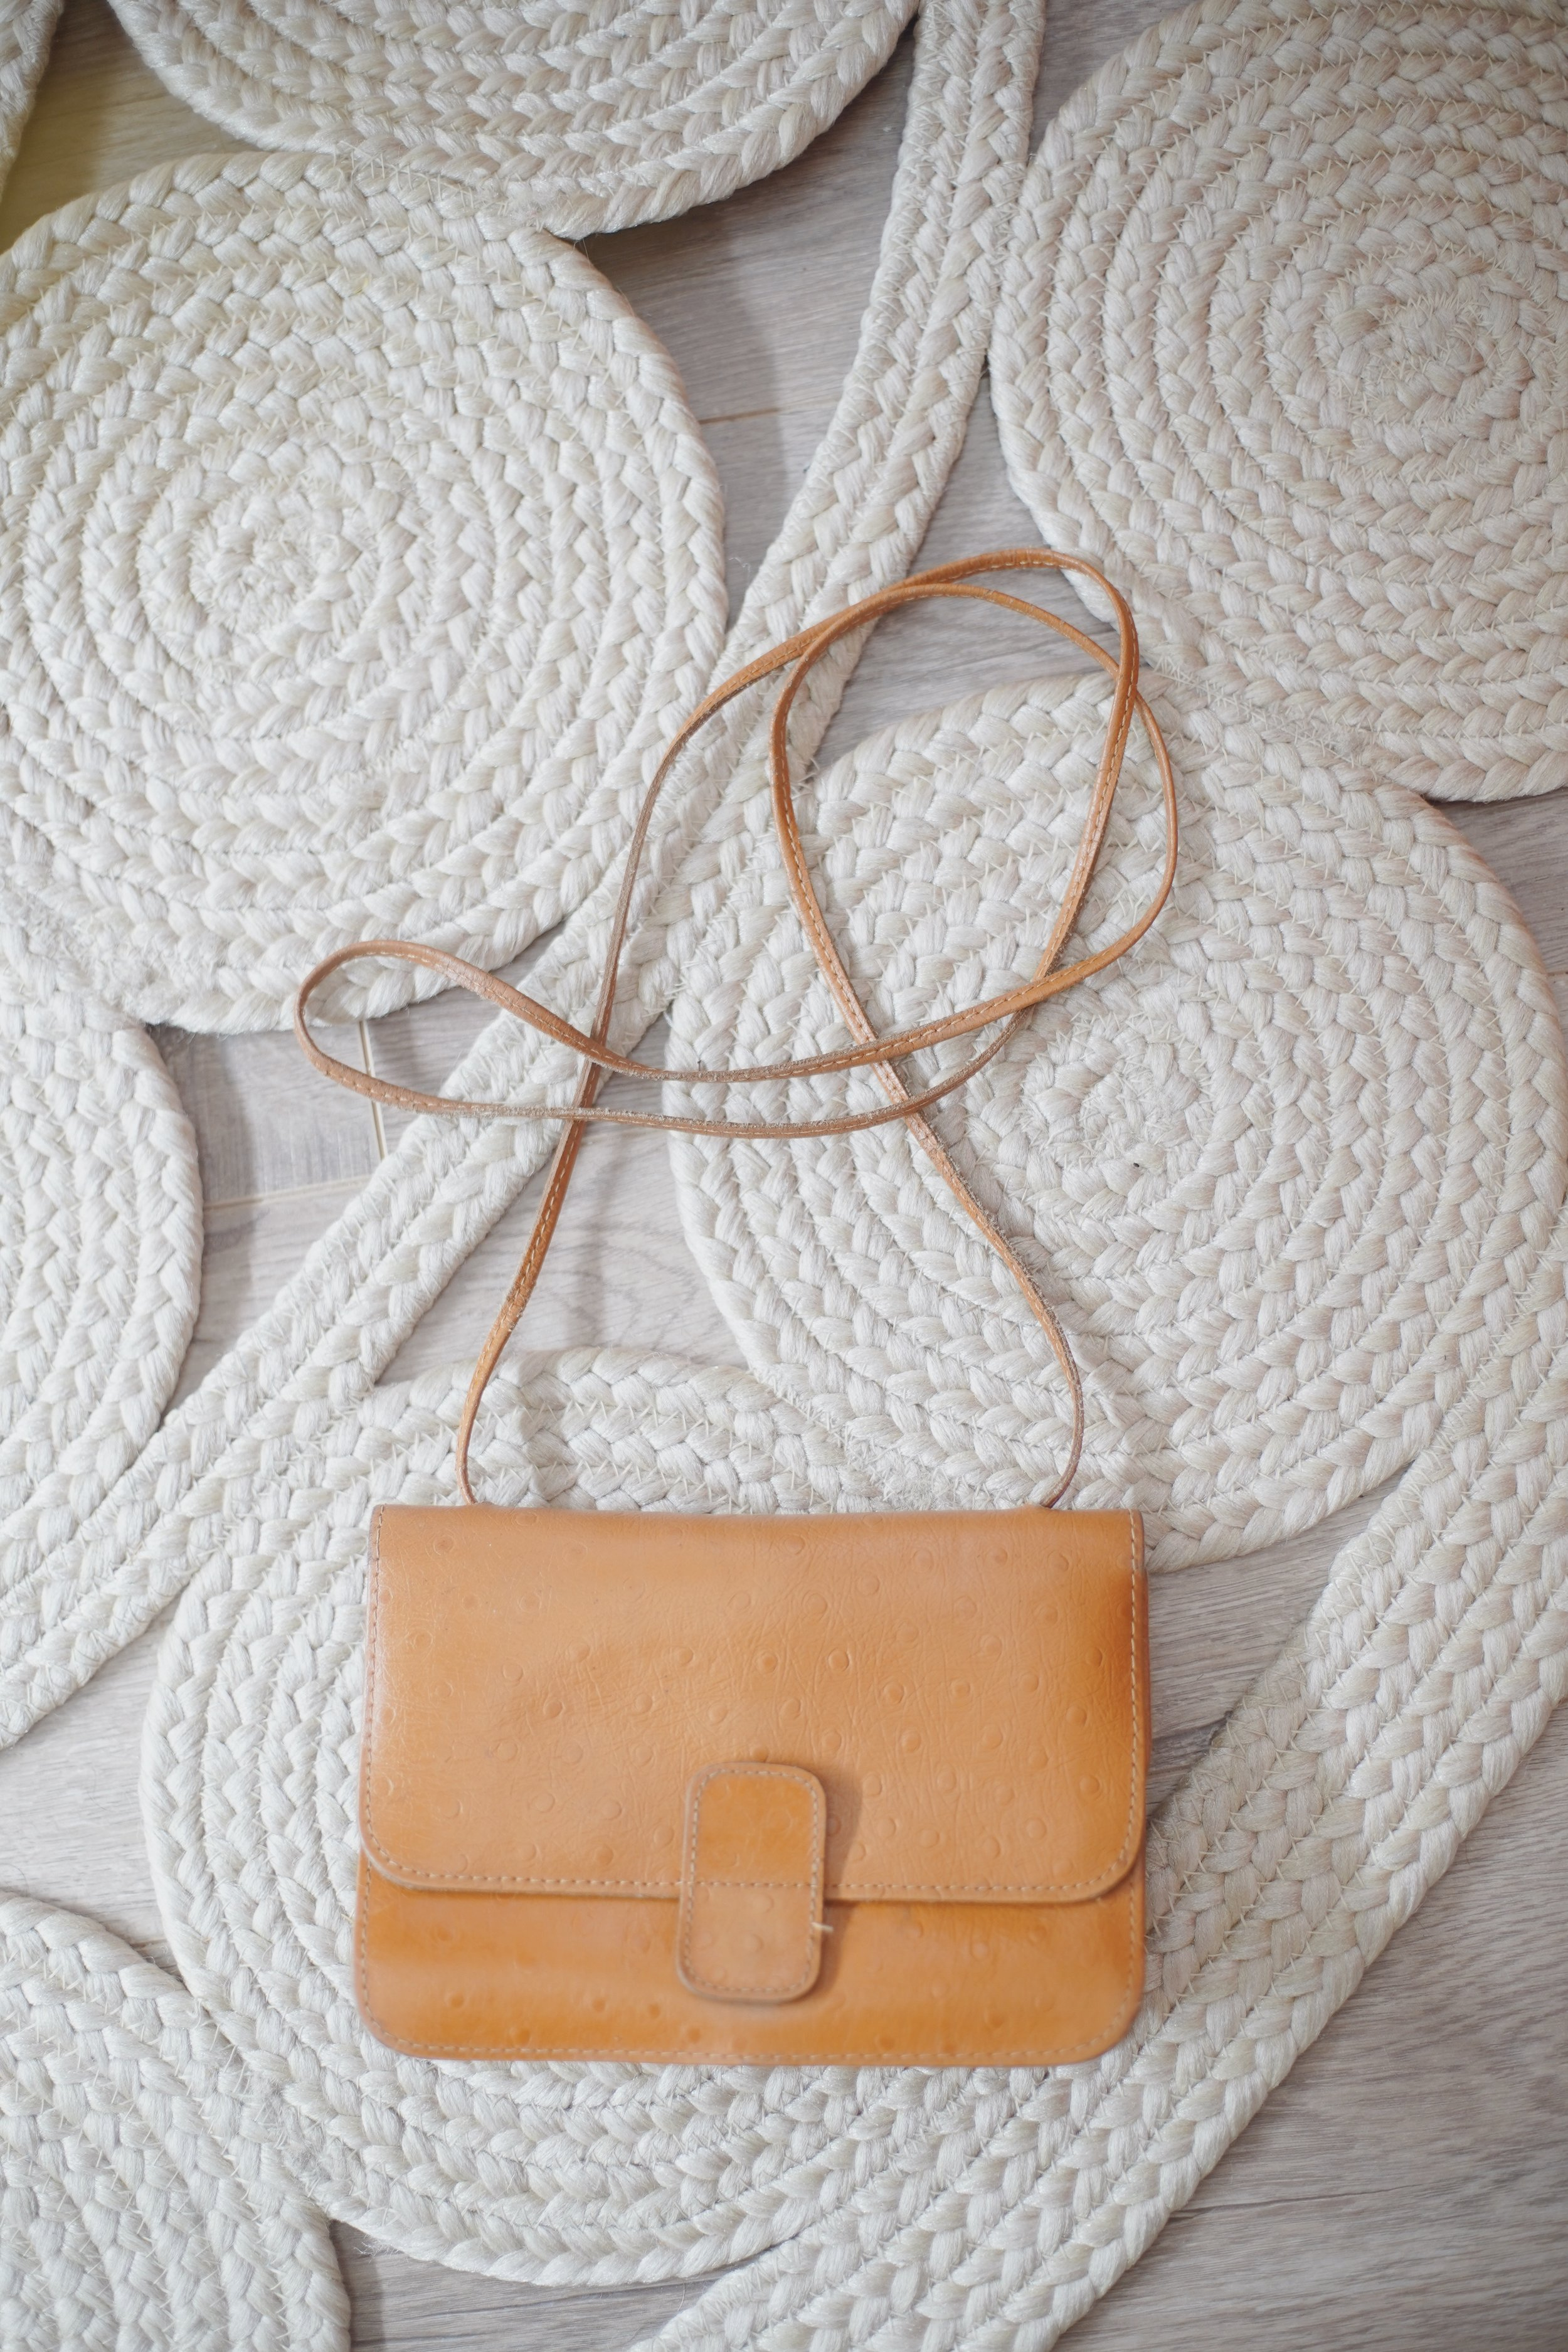 vtg leather bag - I found this bag the same day I found the woven tote (above). It fits my sunglasses, phone, cards, lip product, and not much else, but it's just so handy, I haven't felt the need to shop for another tiny bag. Plus, it has a little mirror inside!